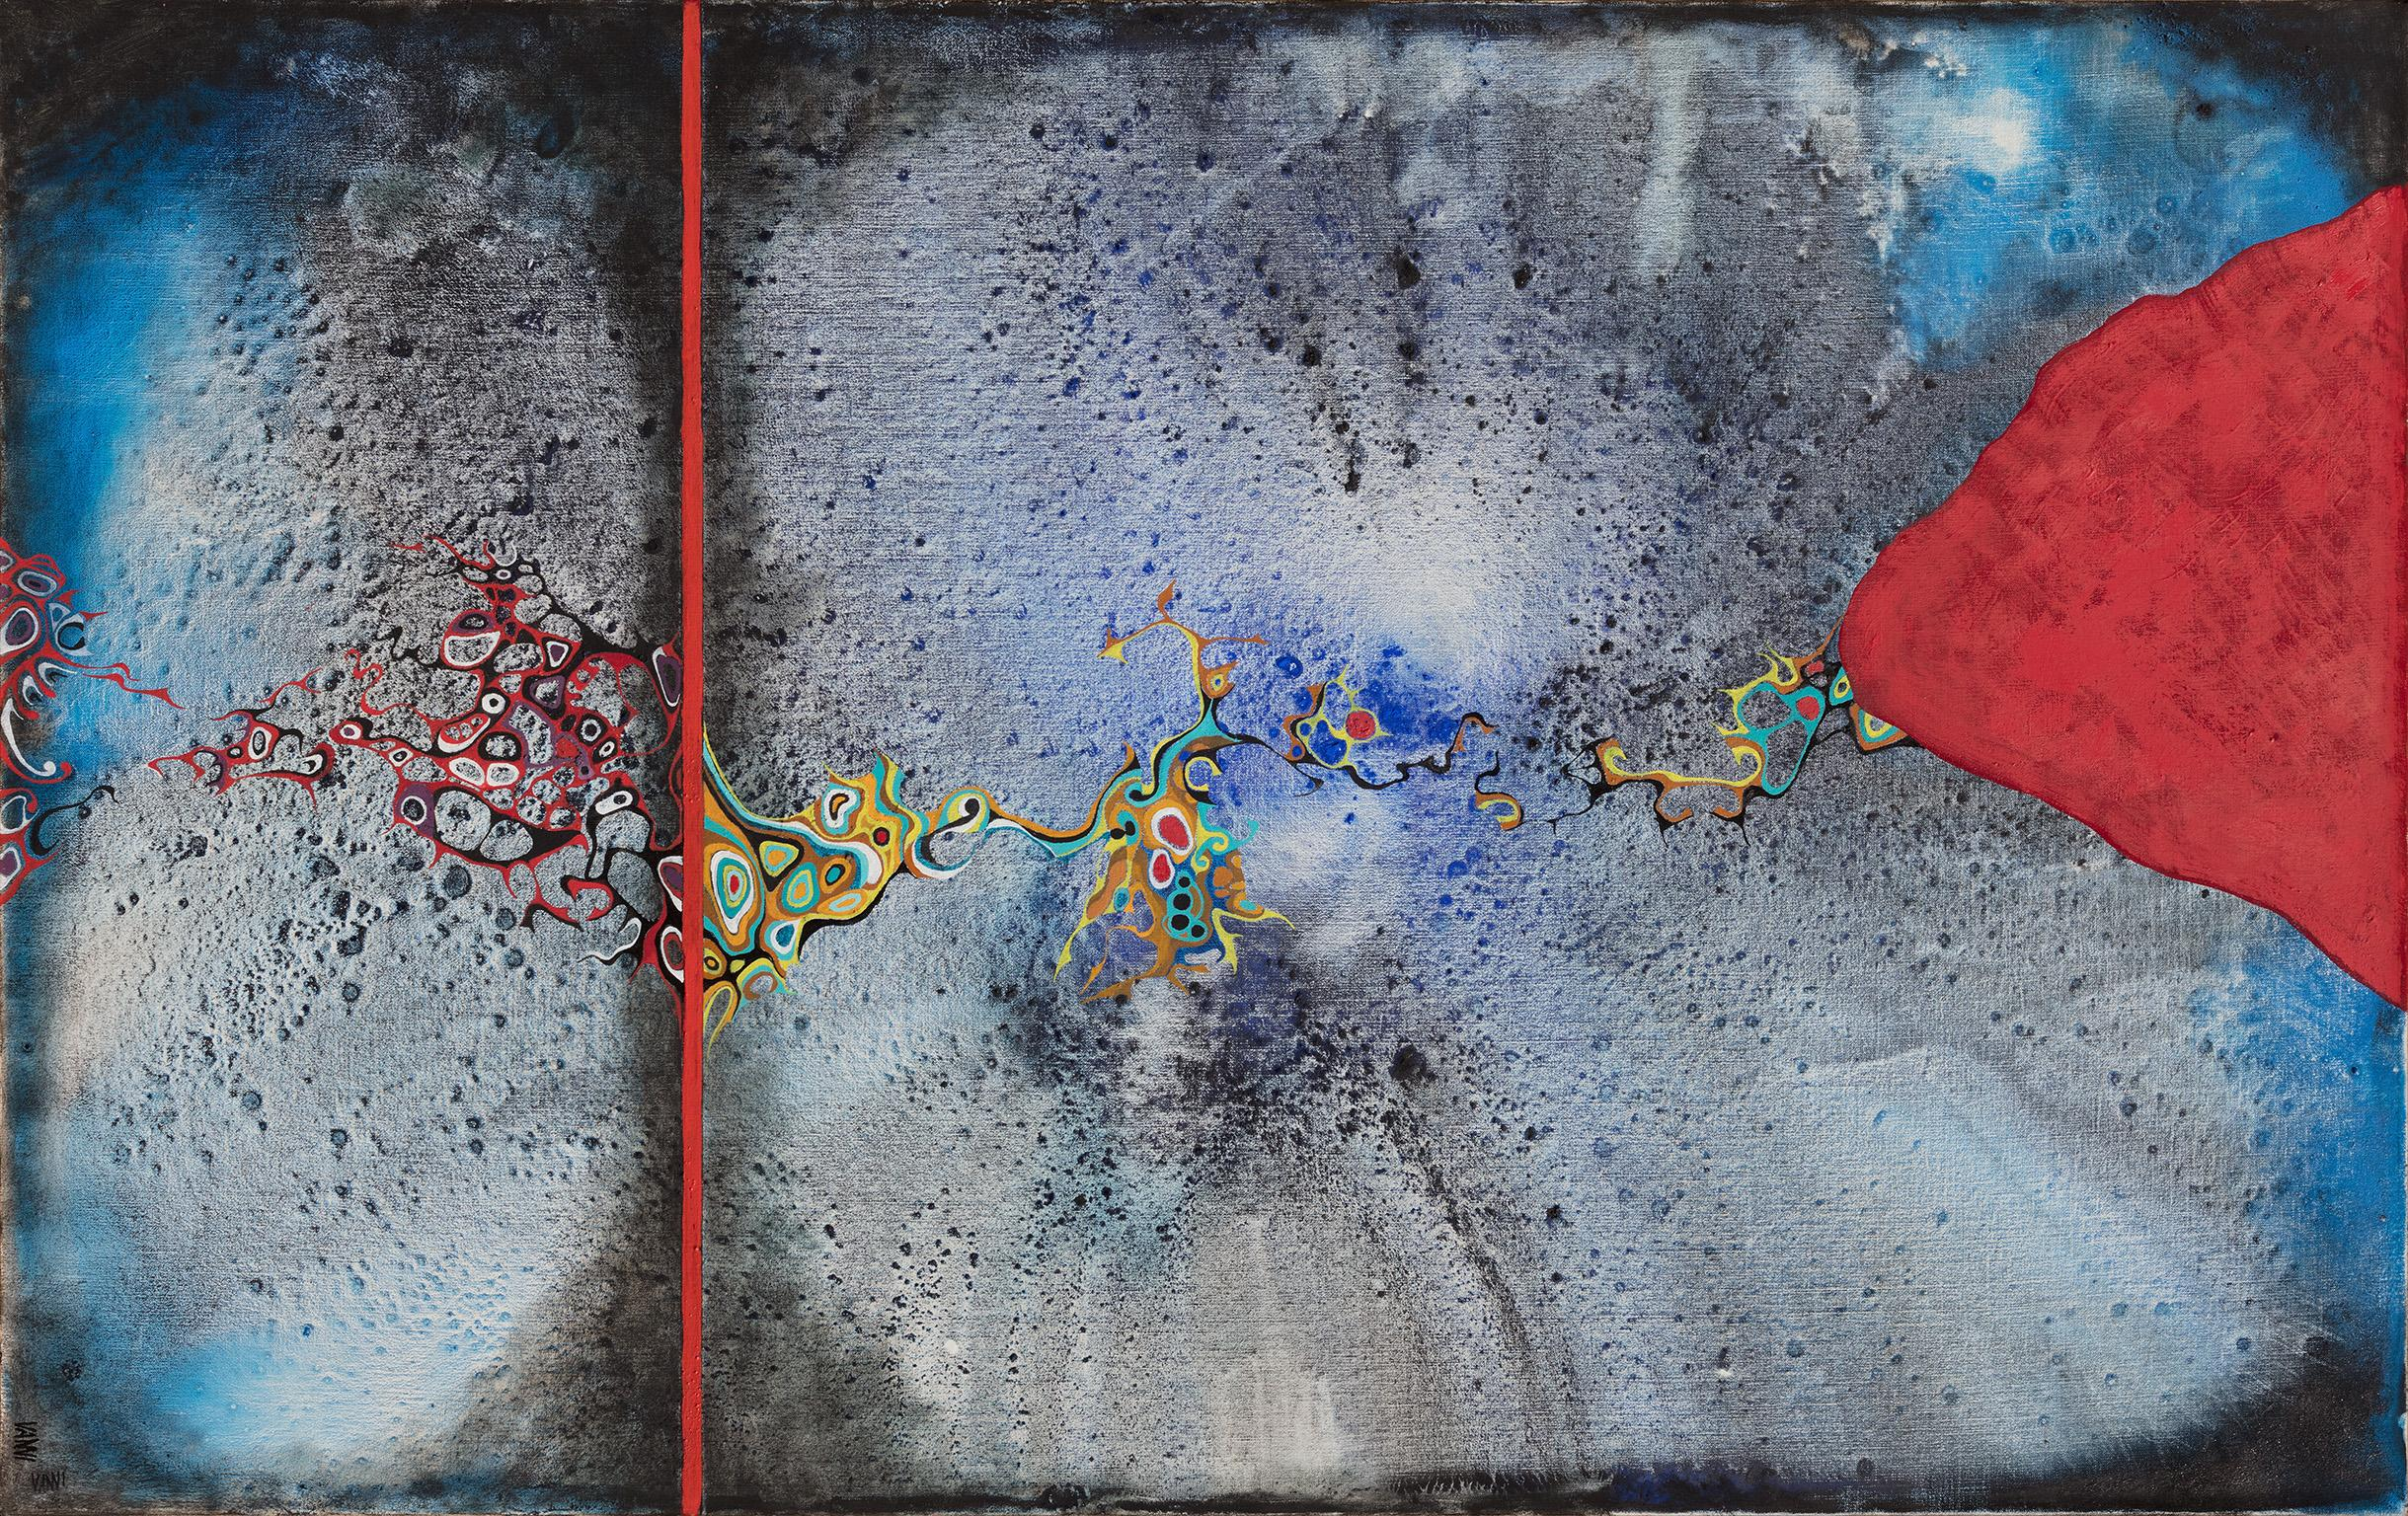 Osmosis - Large Abstract Cosmic Blue Painting